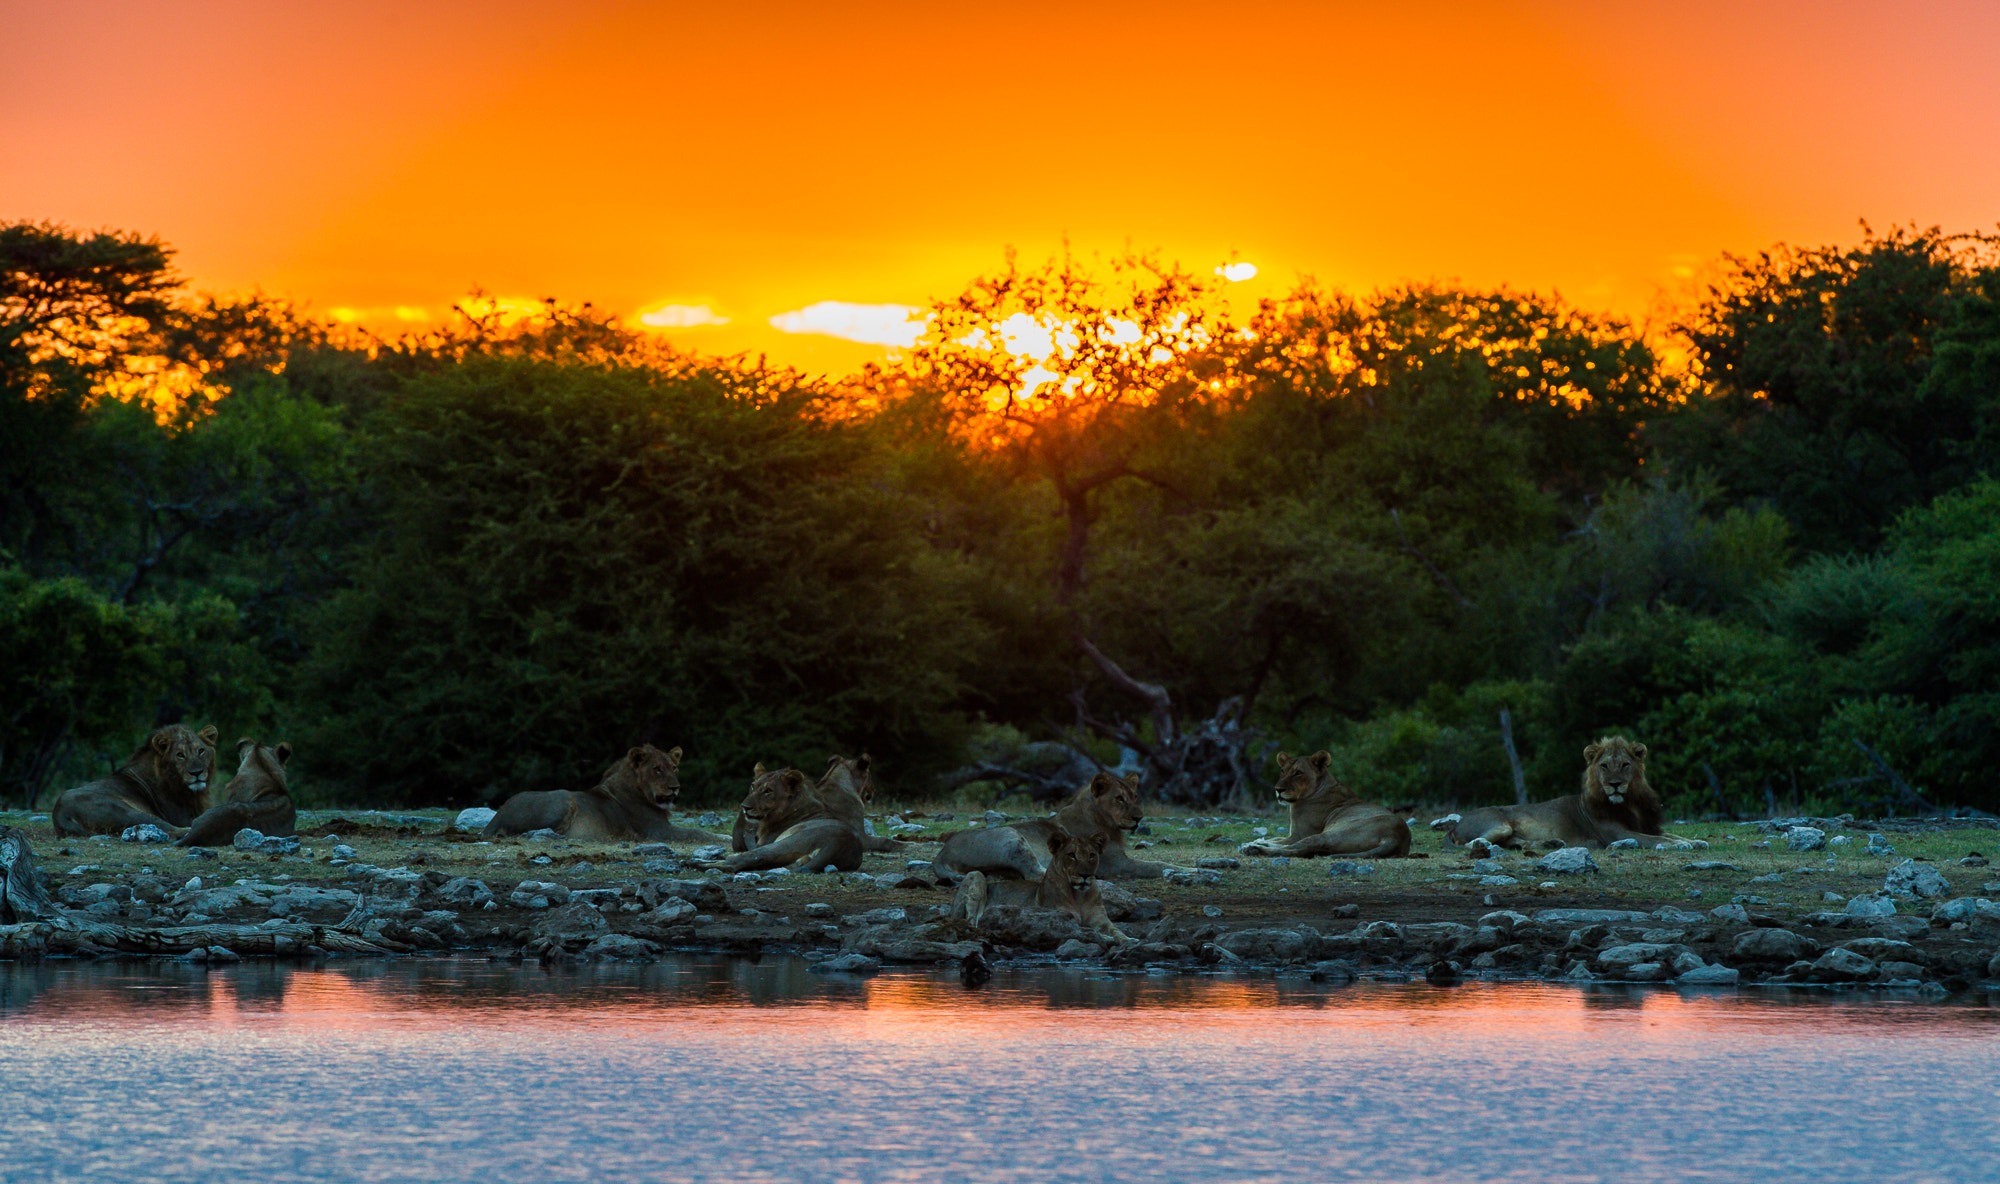 Photograph Sunset for Lions by Bridgena Barnard on 500px